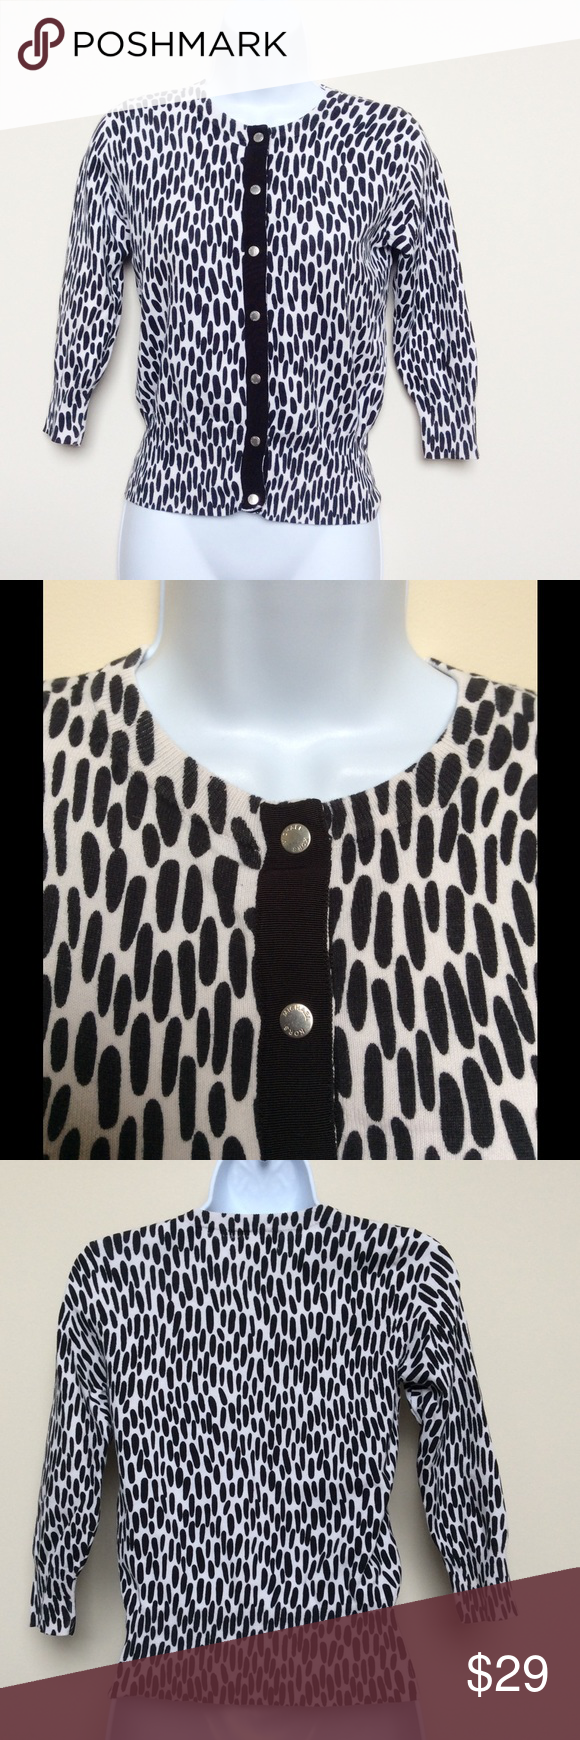 Michael Kors Black and White XS Cardigan Chic and sophisticated ...